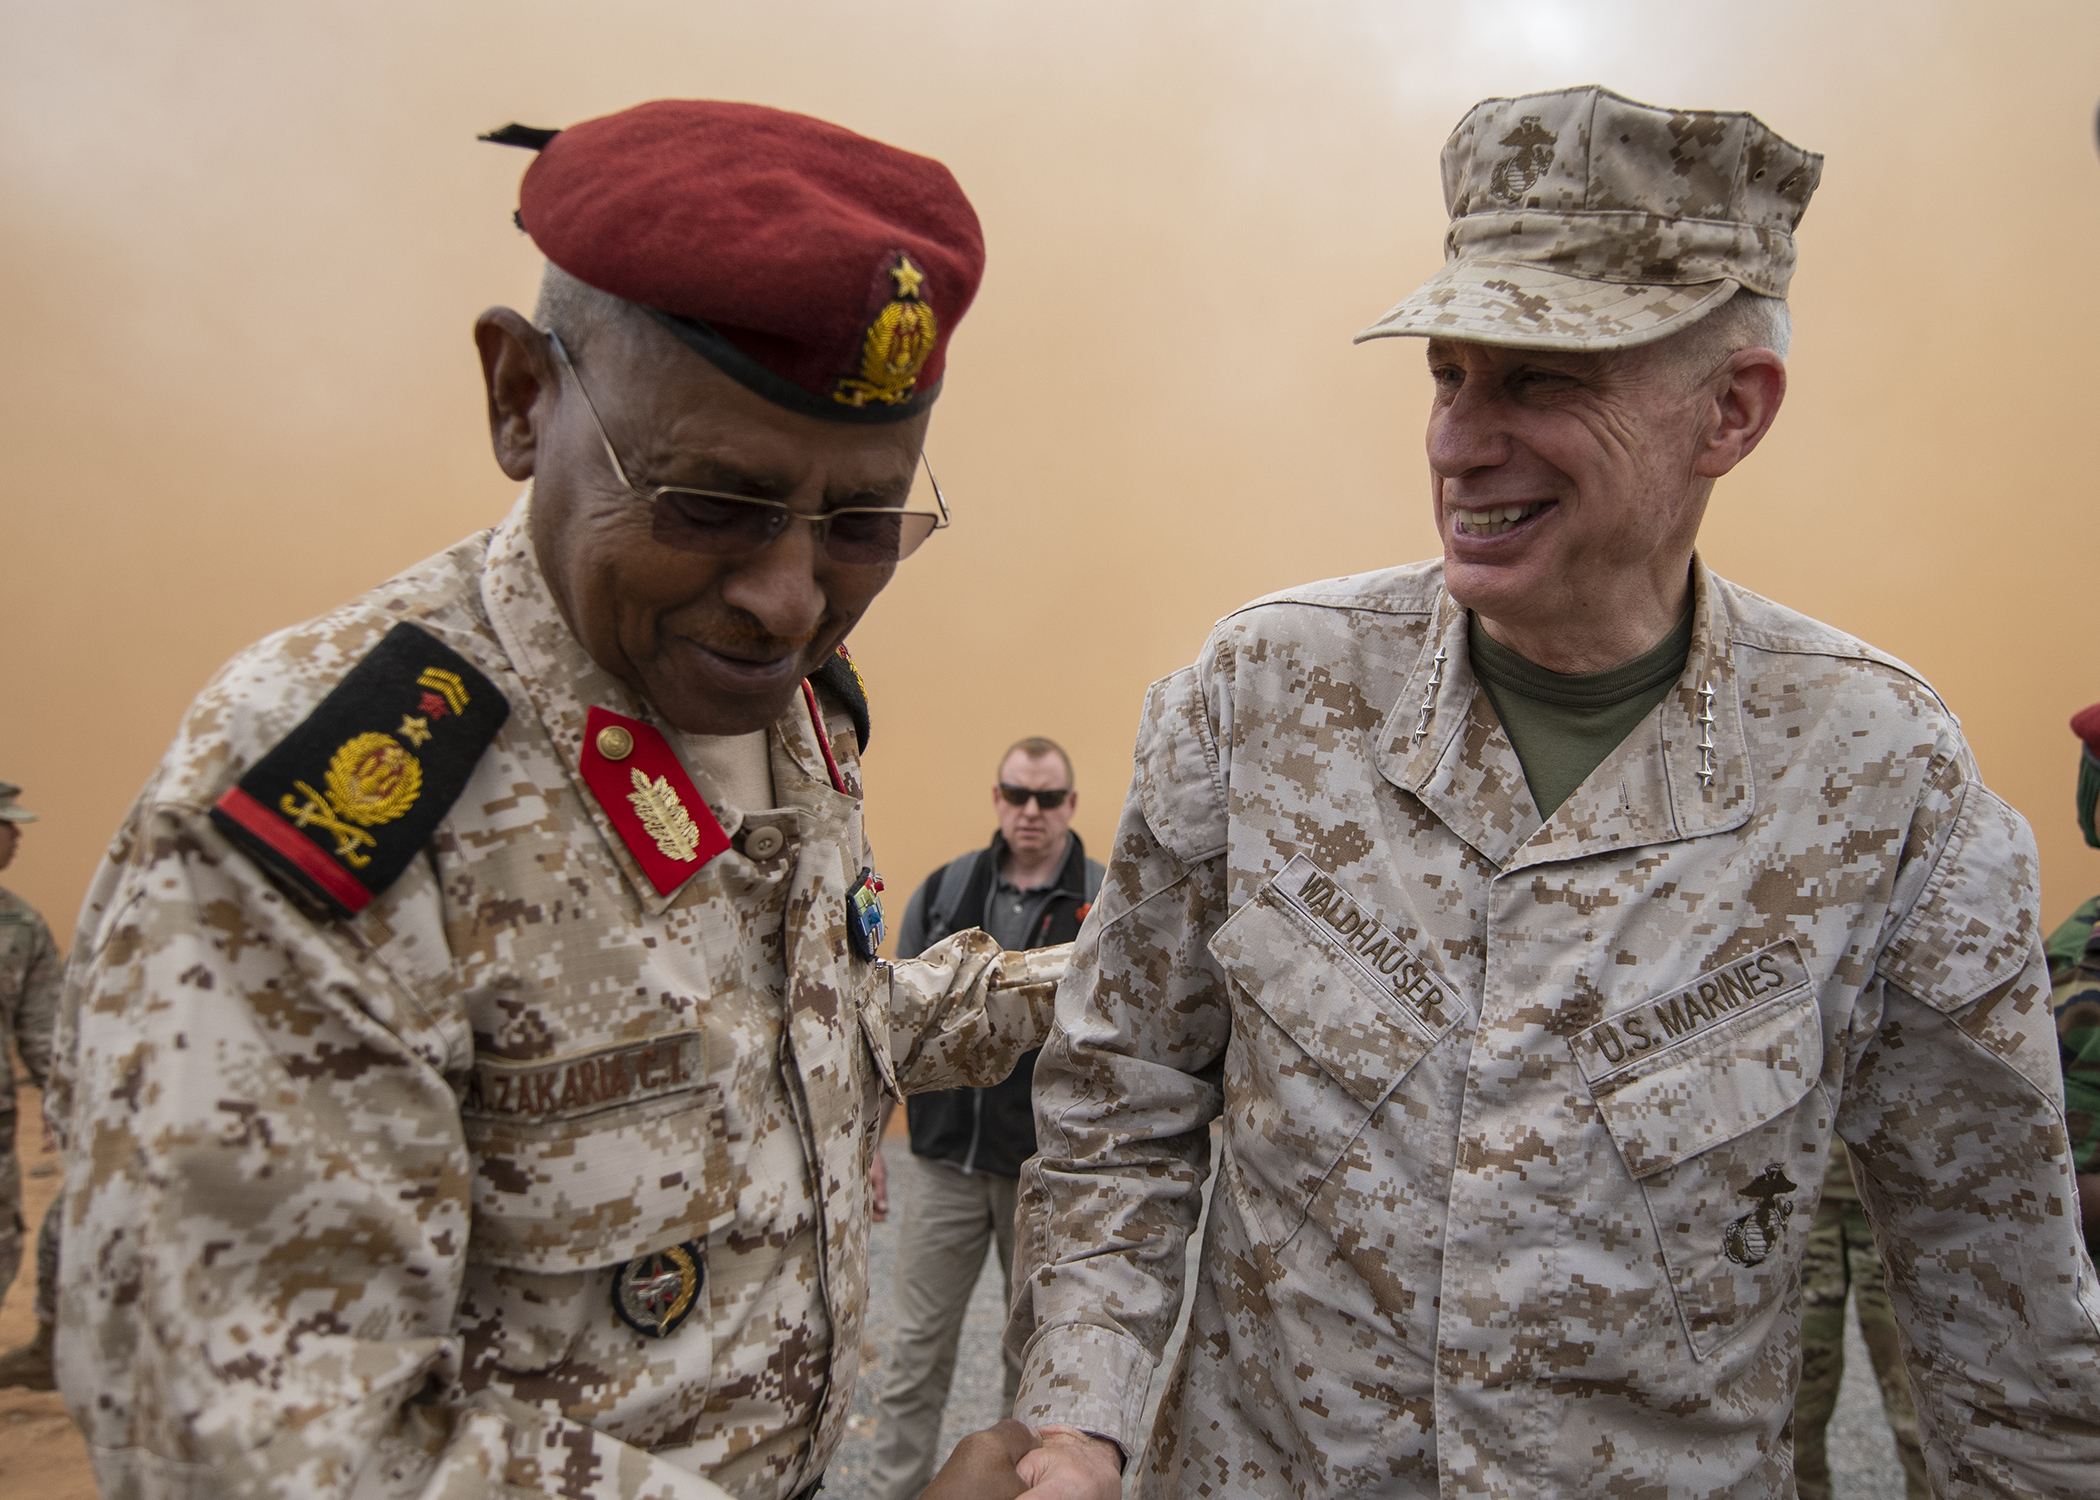 U.S. Marine Corps Gen. Thomas D. Waldhauser, right, commander of U.S. Africa Command, shakes hands with Chief of General Staff of the Djibouti Armed Forces Gen. Zakaria Cheik Ibrahim at a training base in Djibouti, March 21, 2019. While in Djibouti, Waldhauser observed the ongoing growth and development of the Rapid Intervention Battalion, the Djiboutian army's elite military force, which the U.S. is in the process of training and equipping at the request of the Djiboutian government. (U.S. Air Force photo by Tech. Sgt. Shawn Nickel)